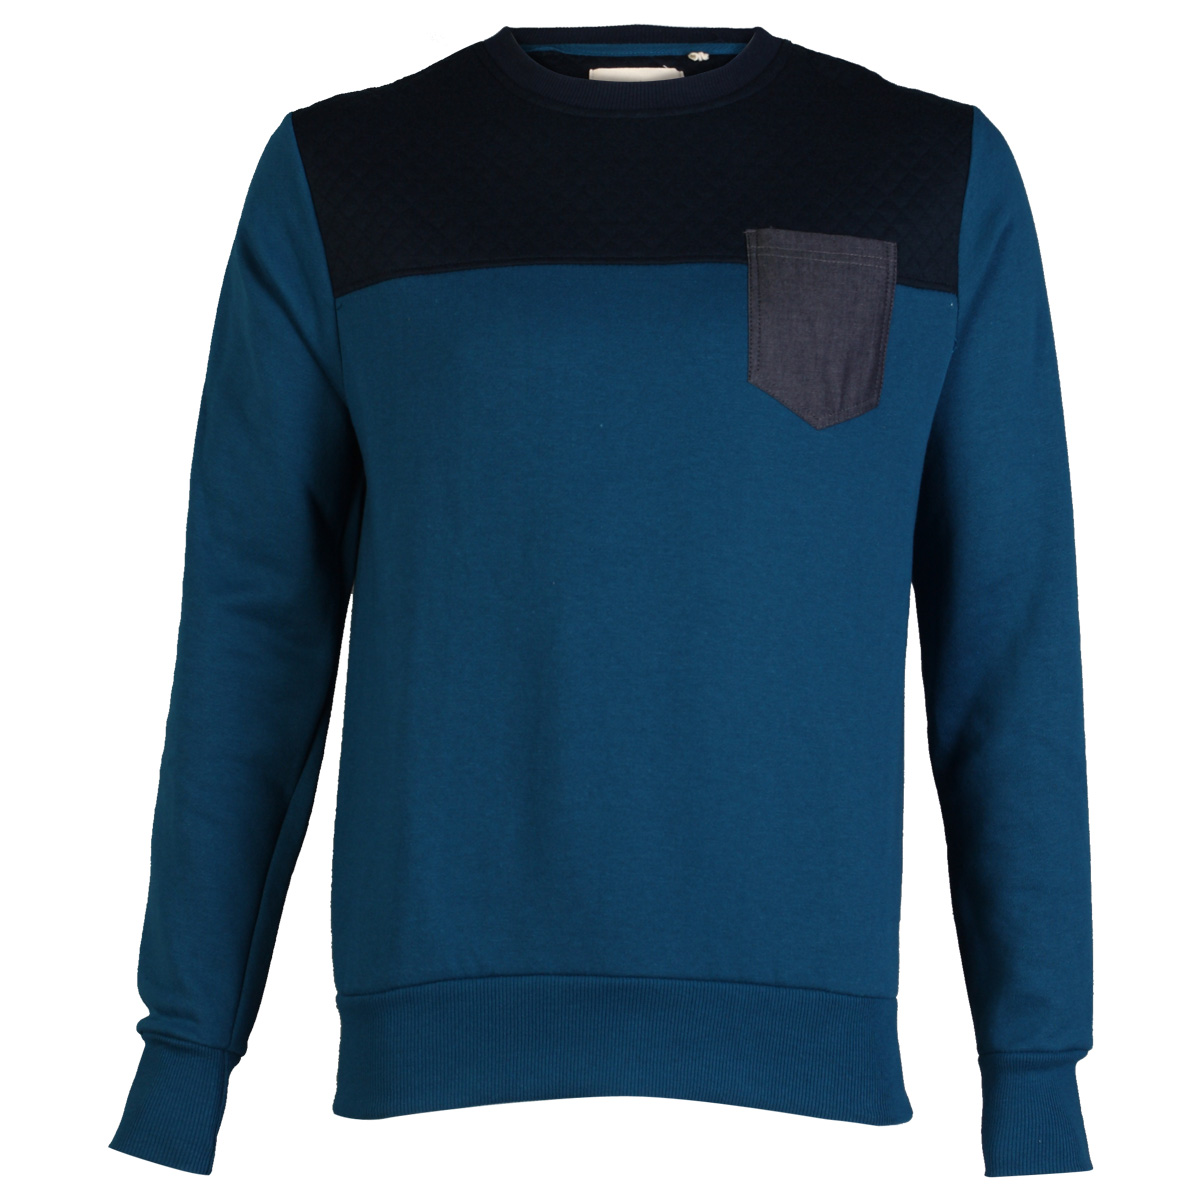 NEW-MENS-CONSPIRACY-C606712C-TEVIS-QUILTED-LONG-SLEEVE-JUMPER-SWEATER-SIZE-S-XL